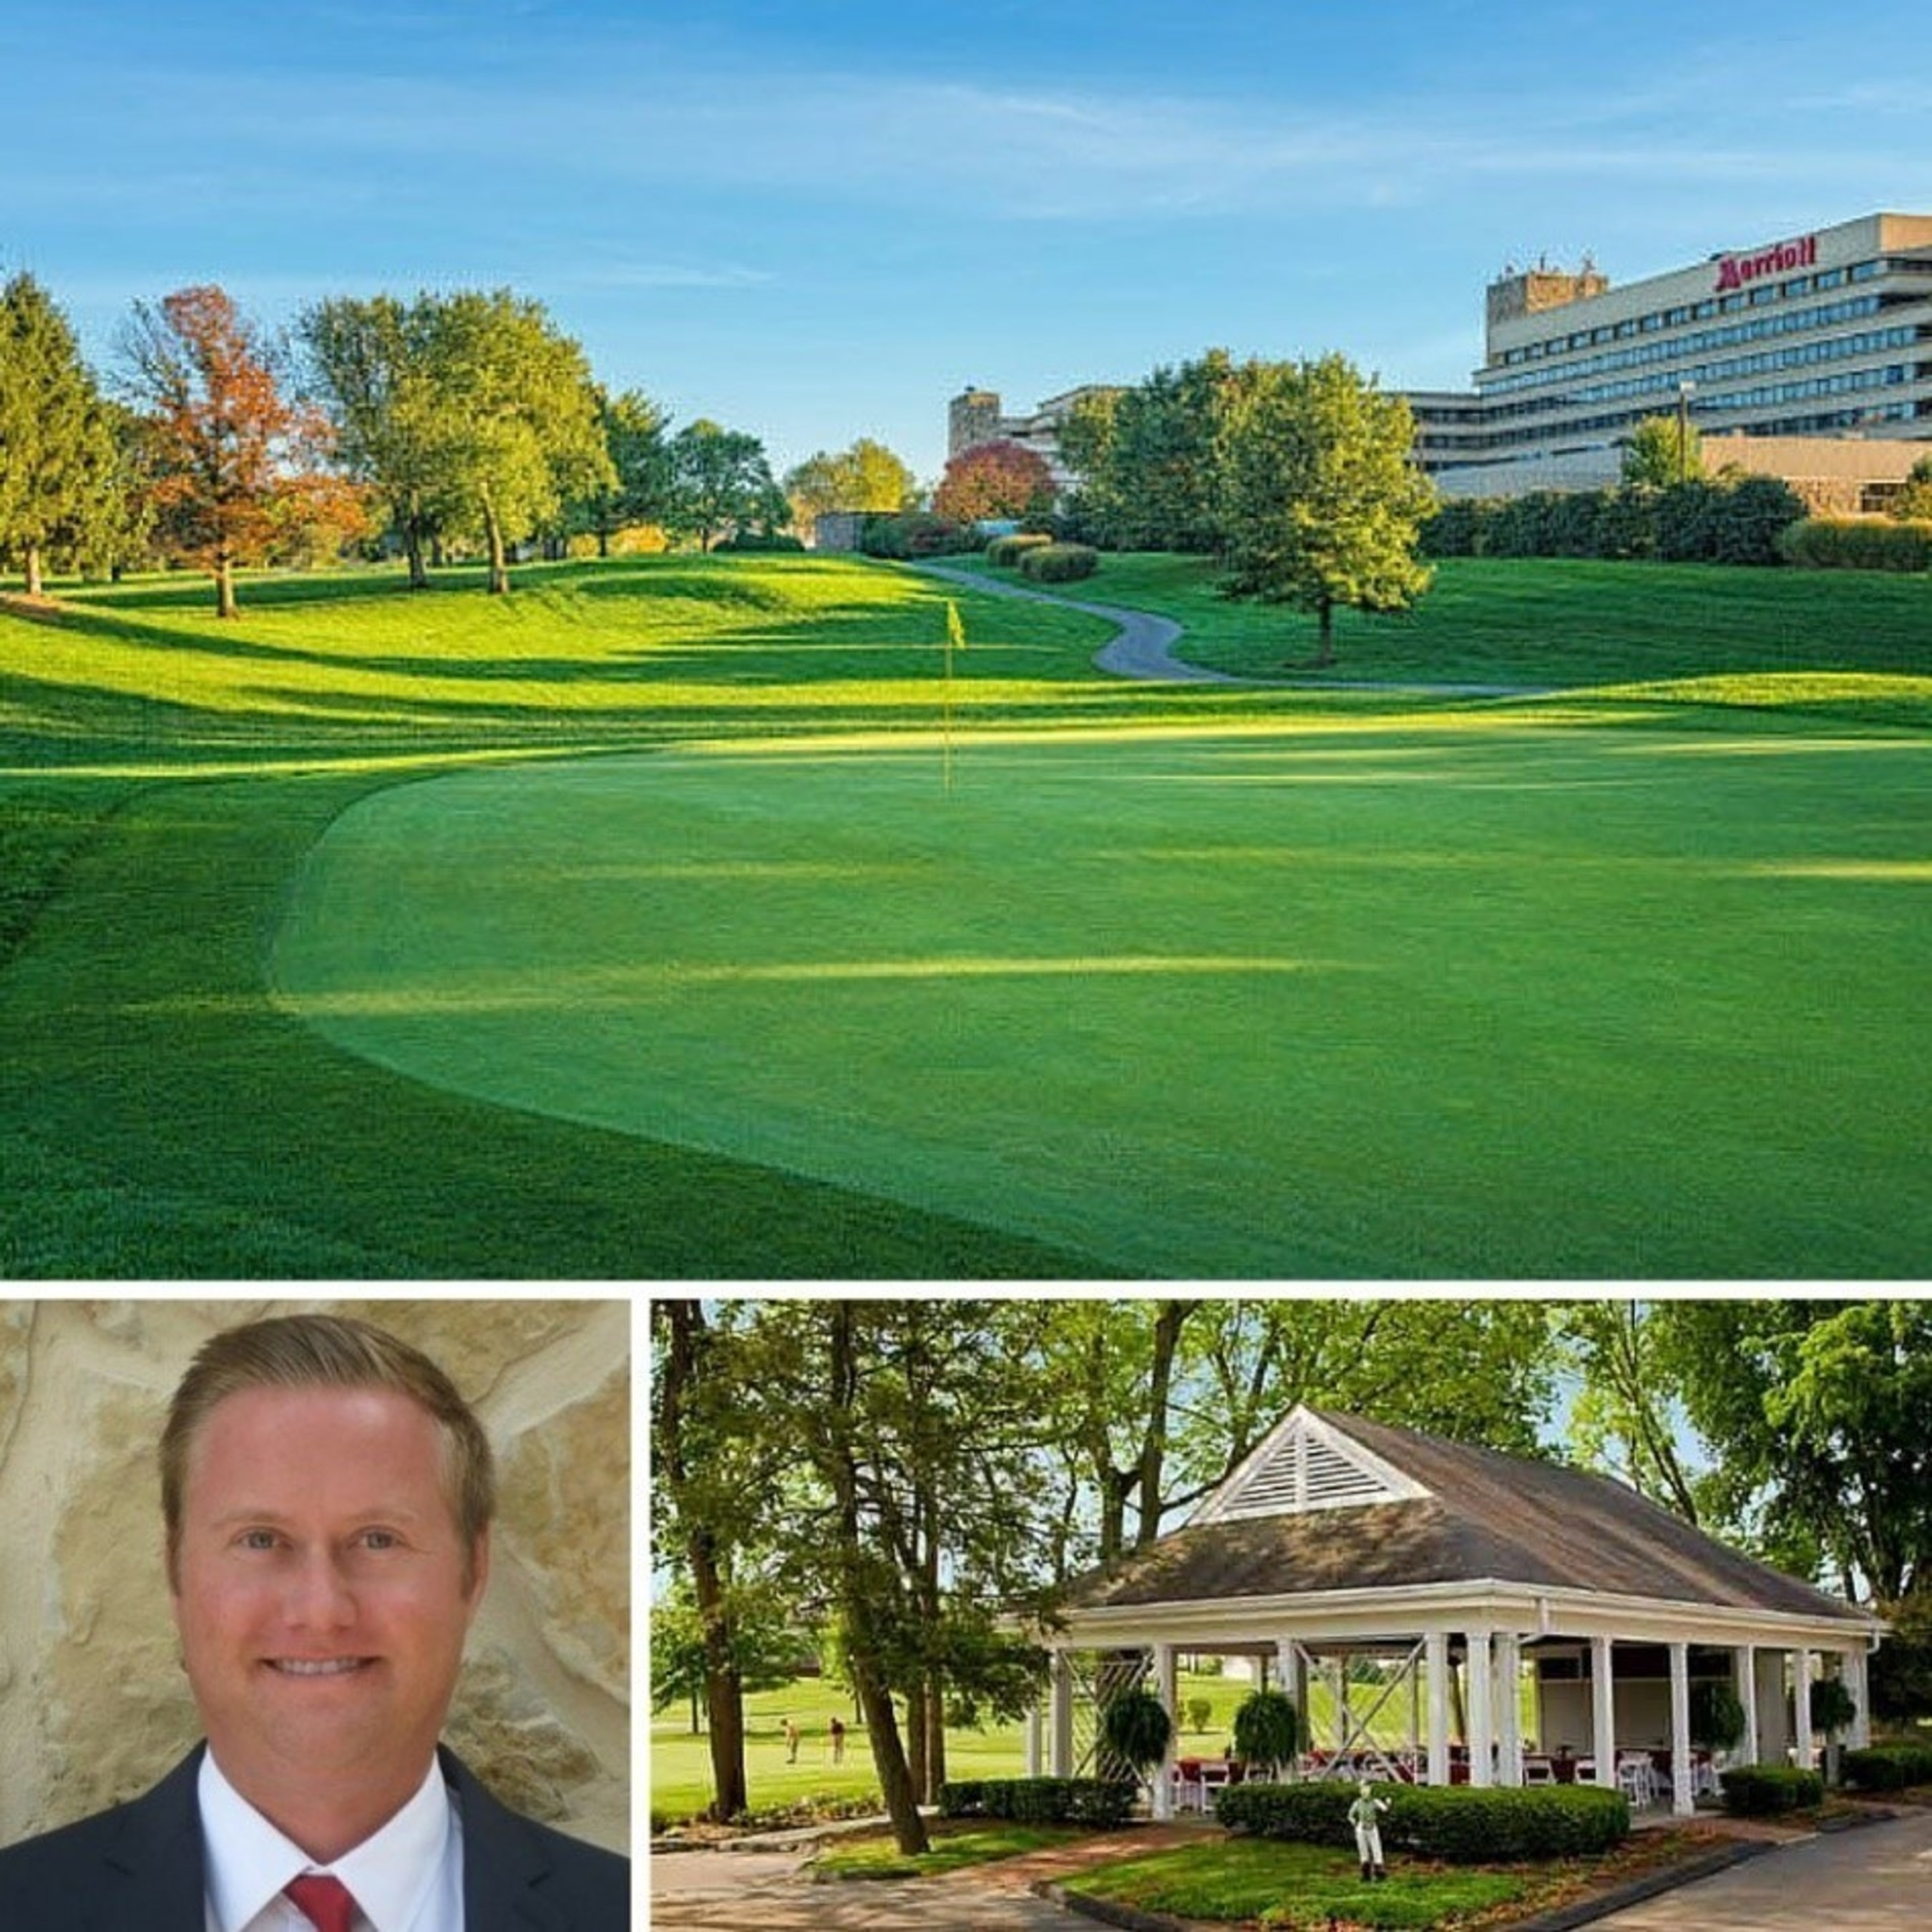 Colin Gooch has been named Director of Golf for the Griffin Gate Marriott Resort & Spa. Griffin Gate Golf Club at the Lexington, KY hotel recently underwent a $1 million bunker renovation under the direction of renowned architect Rees Jones. For information or tee times, visit www.GriffinGateGolf.com or call 1-859-288-6193.